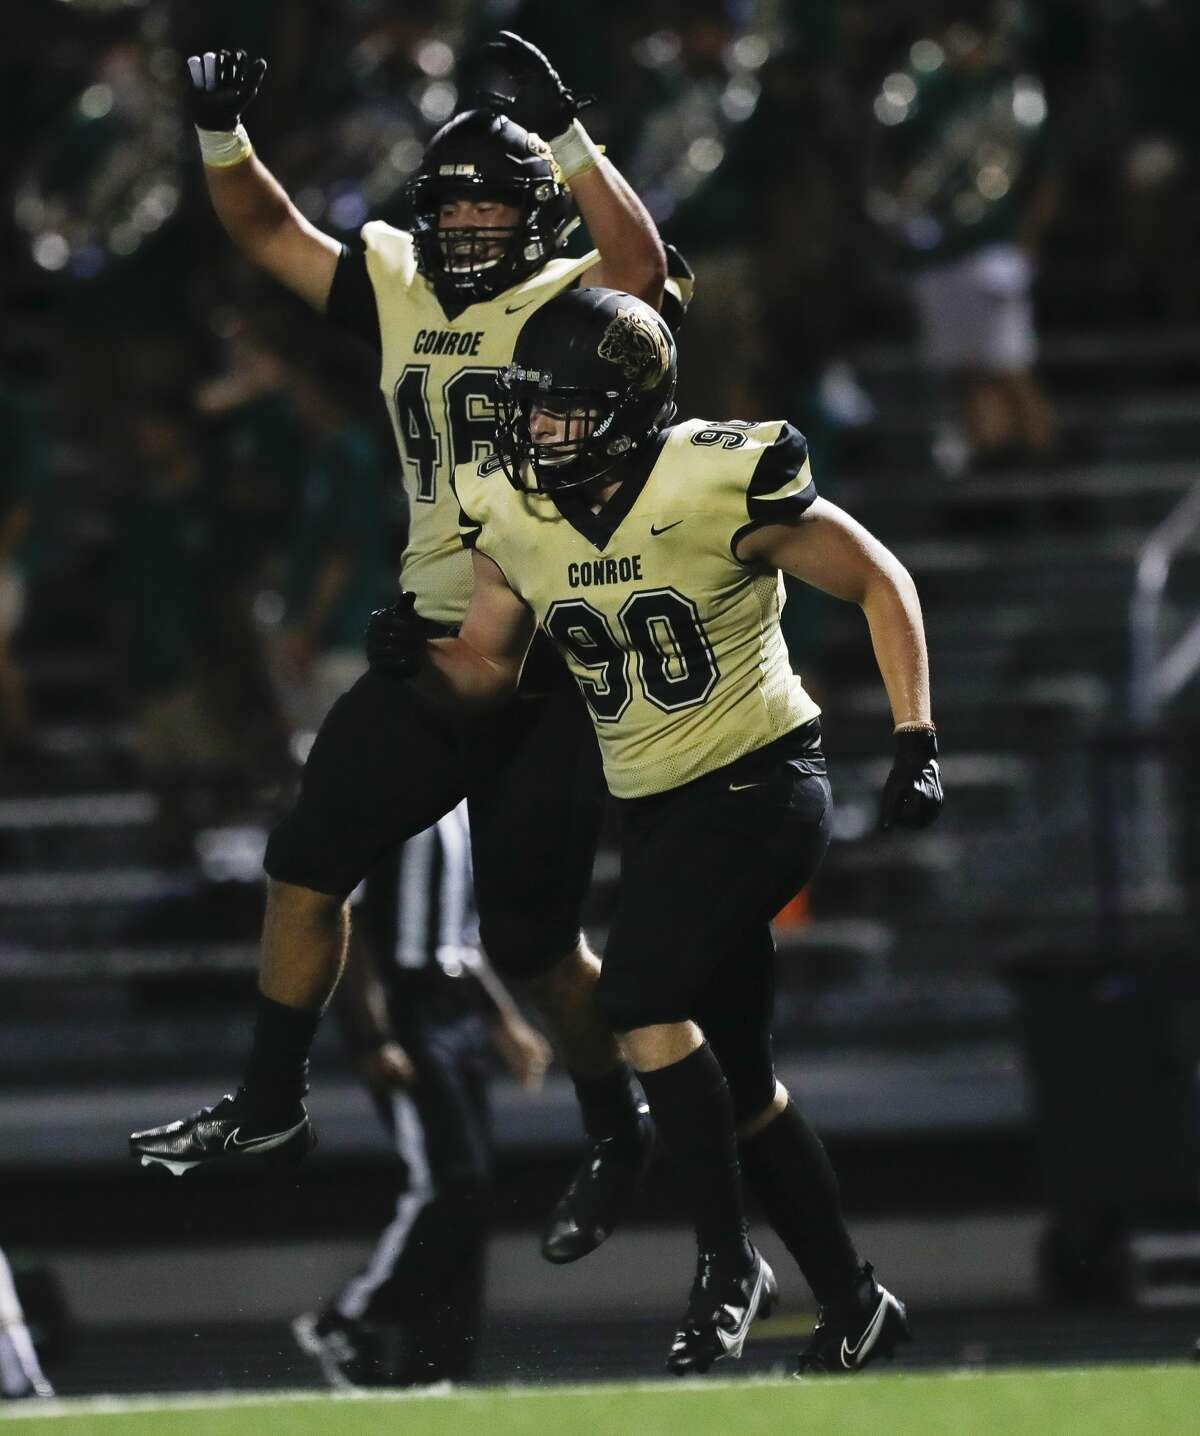 Conroe defensive lineman Matthew Westmoreland (90) reacts after returning a interception for a 45-yard touchdown during the third quarter of a non-district high school football game at Buddy Moorhead Stadium, Friday, Aug. 27, 2021, in Conroe.